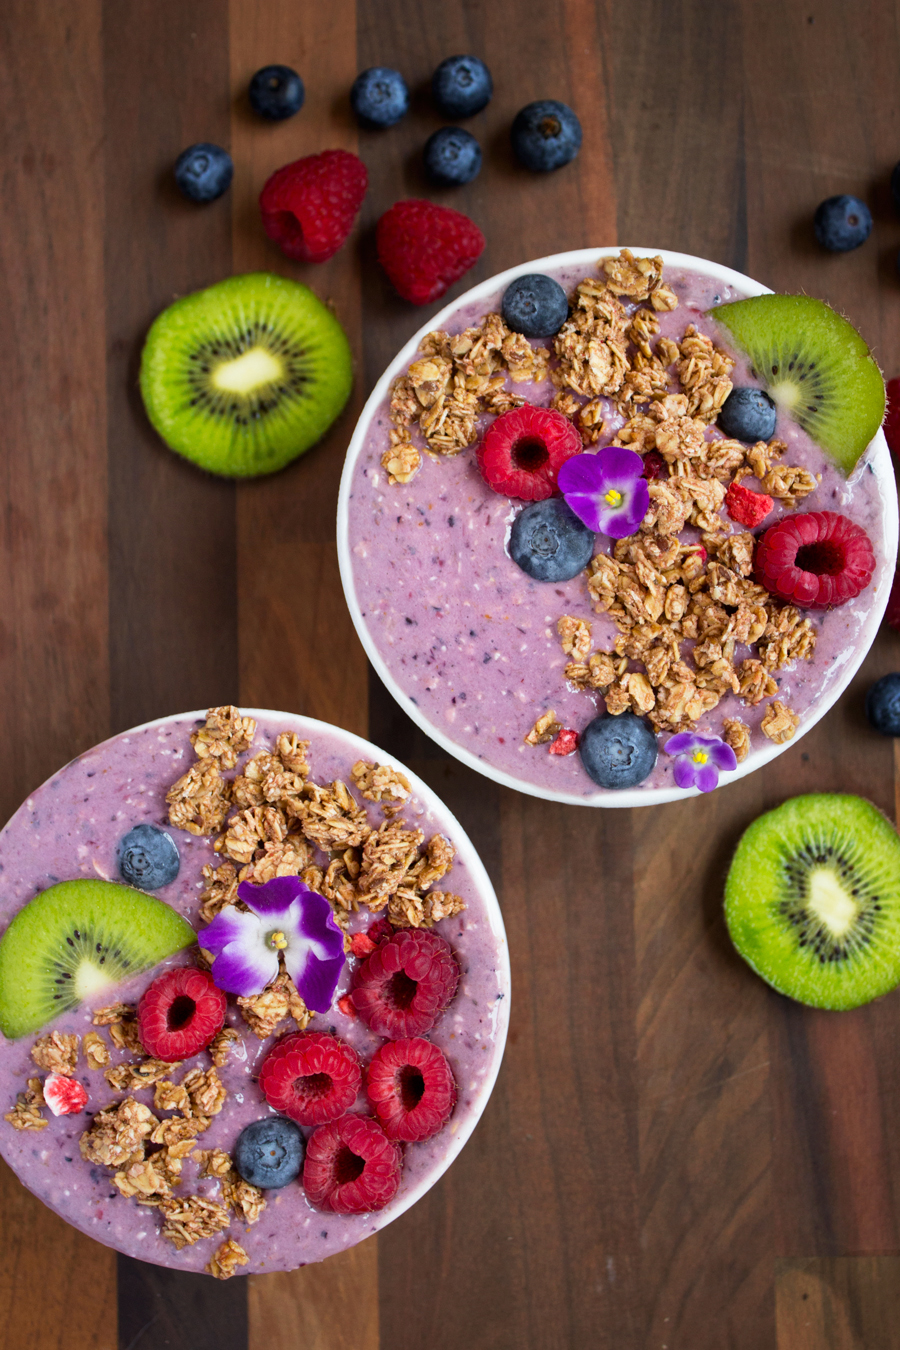 Purple Power Smoothie Bowls | Making Life Sweet with Lauren Gaskill